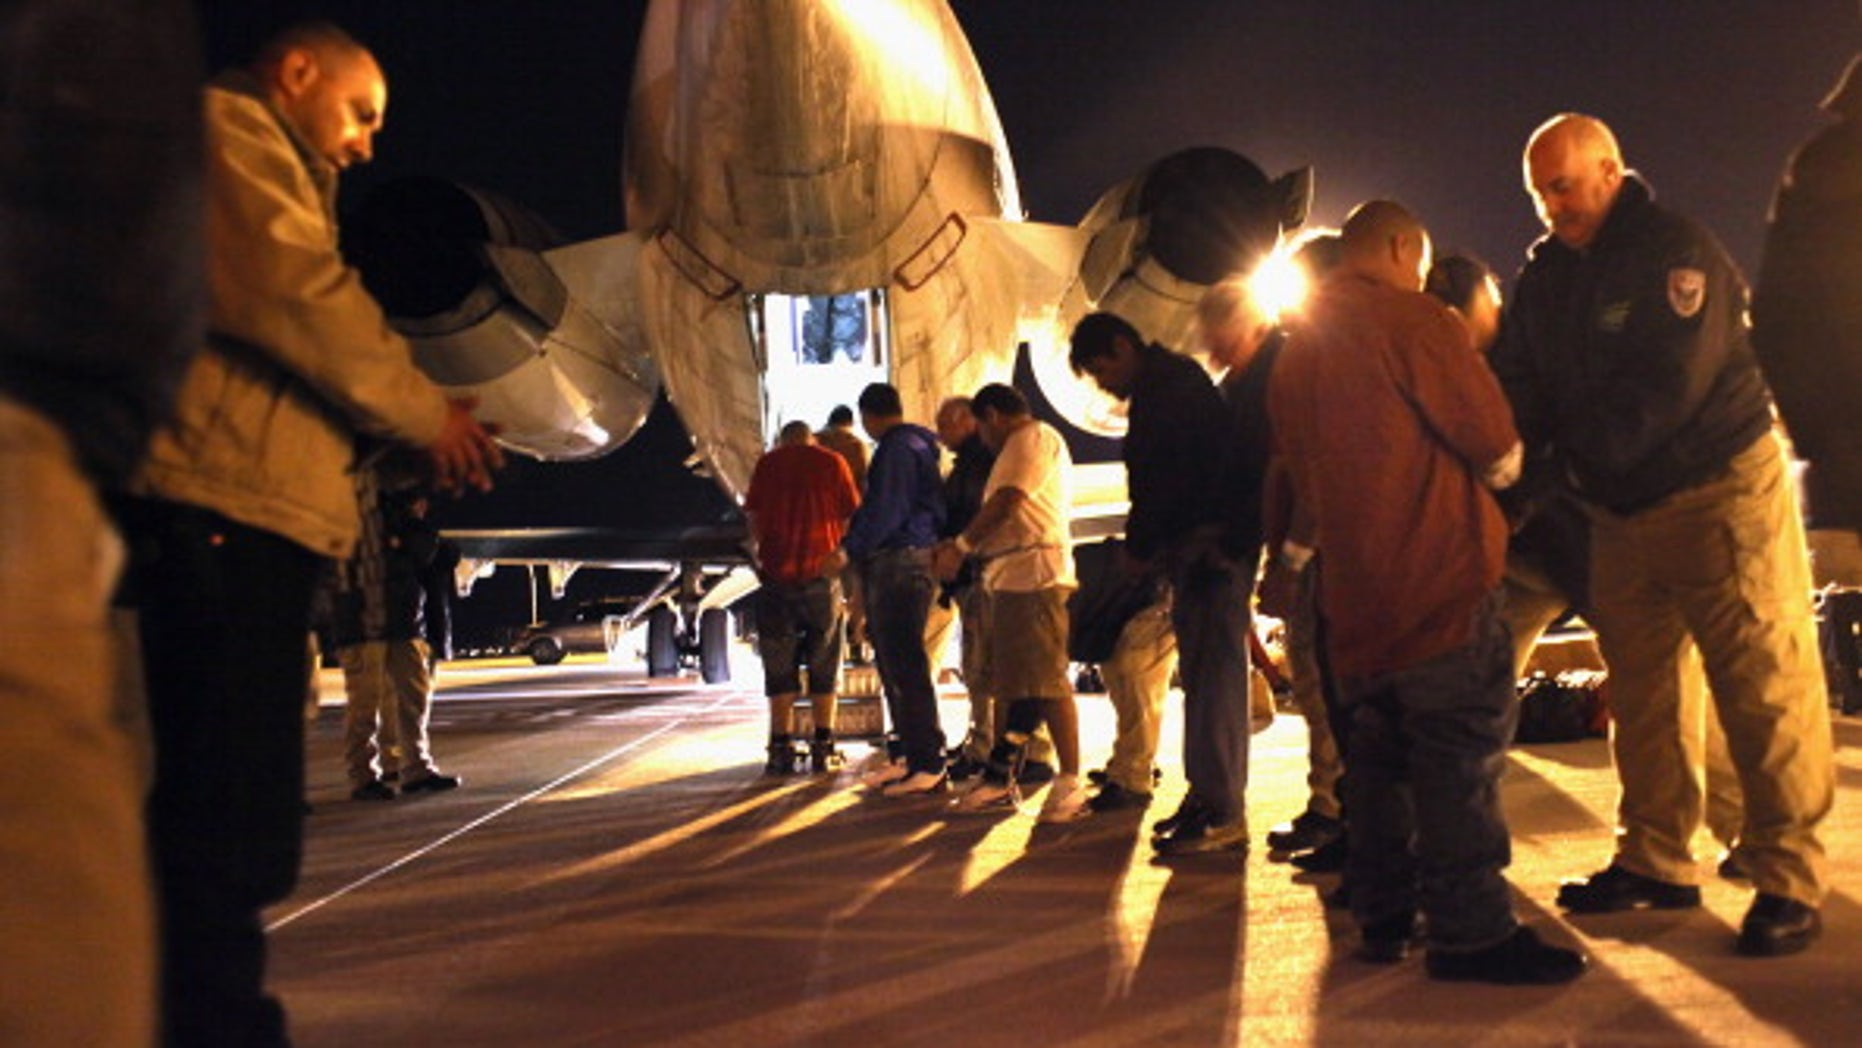 Immigration and Customs Enforcement (ICE) officers pat down undocumented  immigrants from El Salvador before boarding them onto a deportation flight on December 8, 2010 in Mesa, Arizona. (Photo by John Moore/Getty Images)